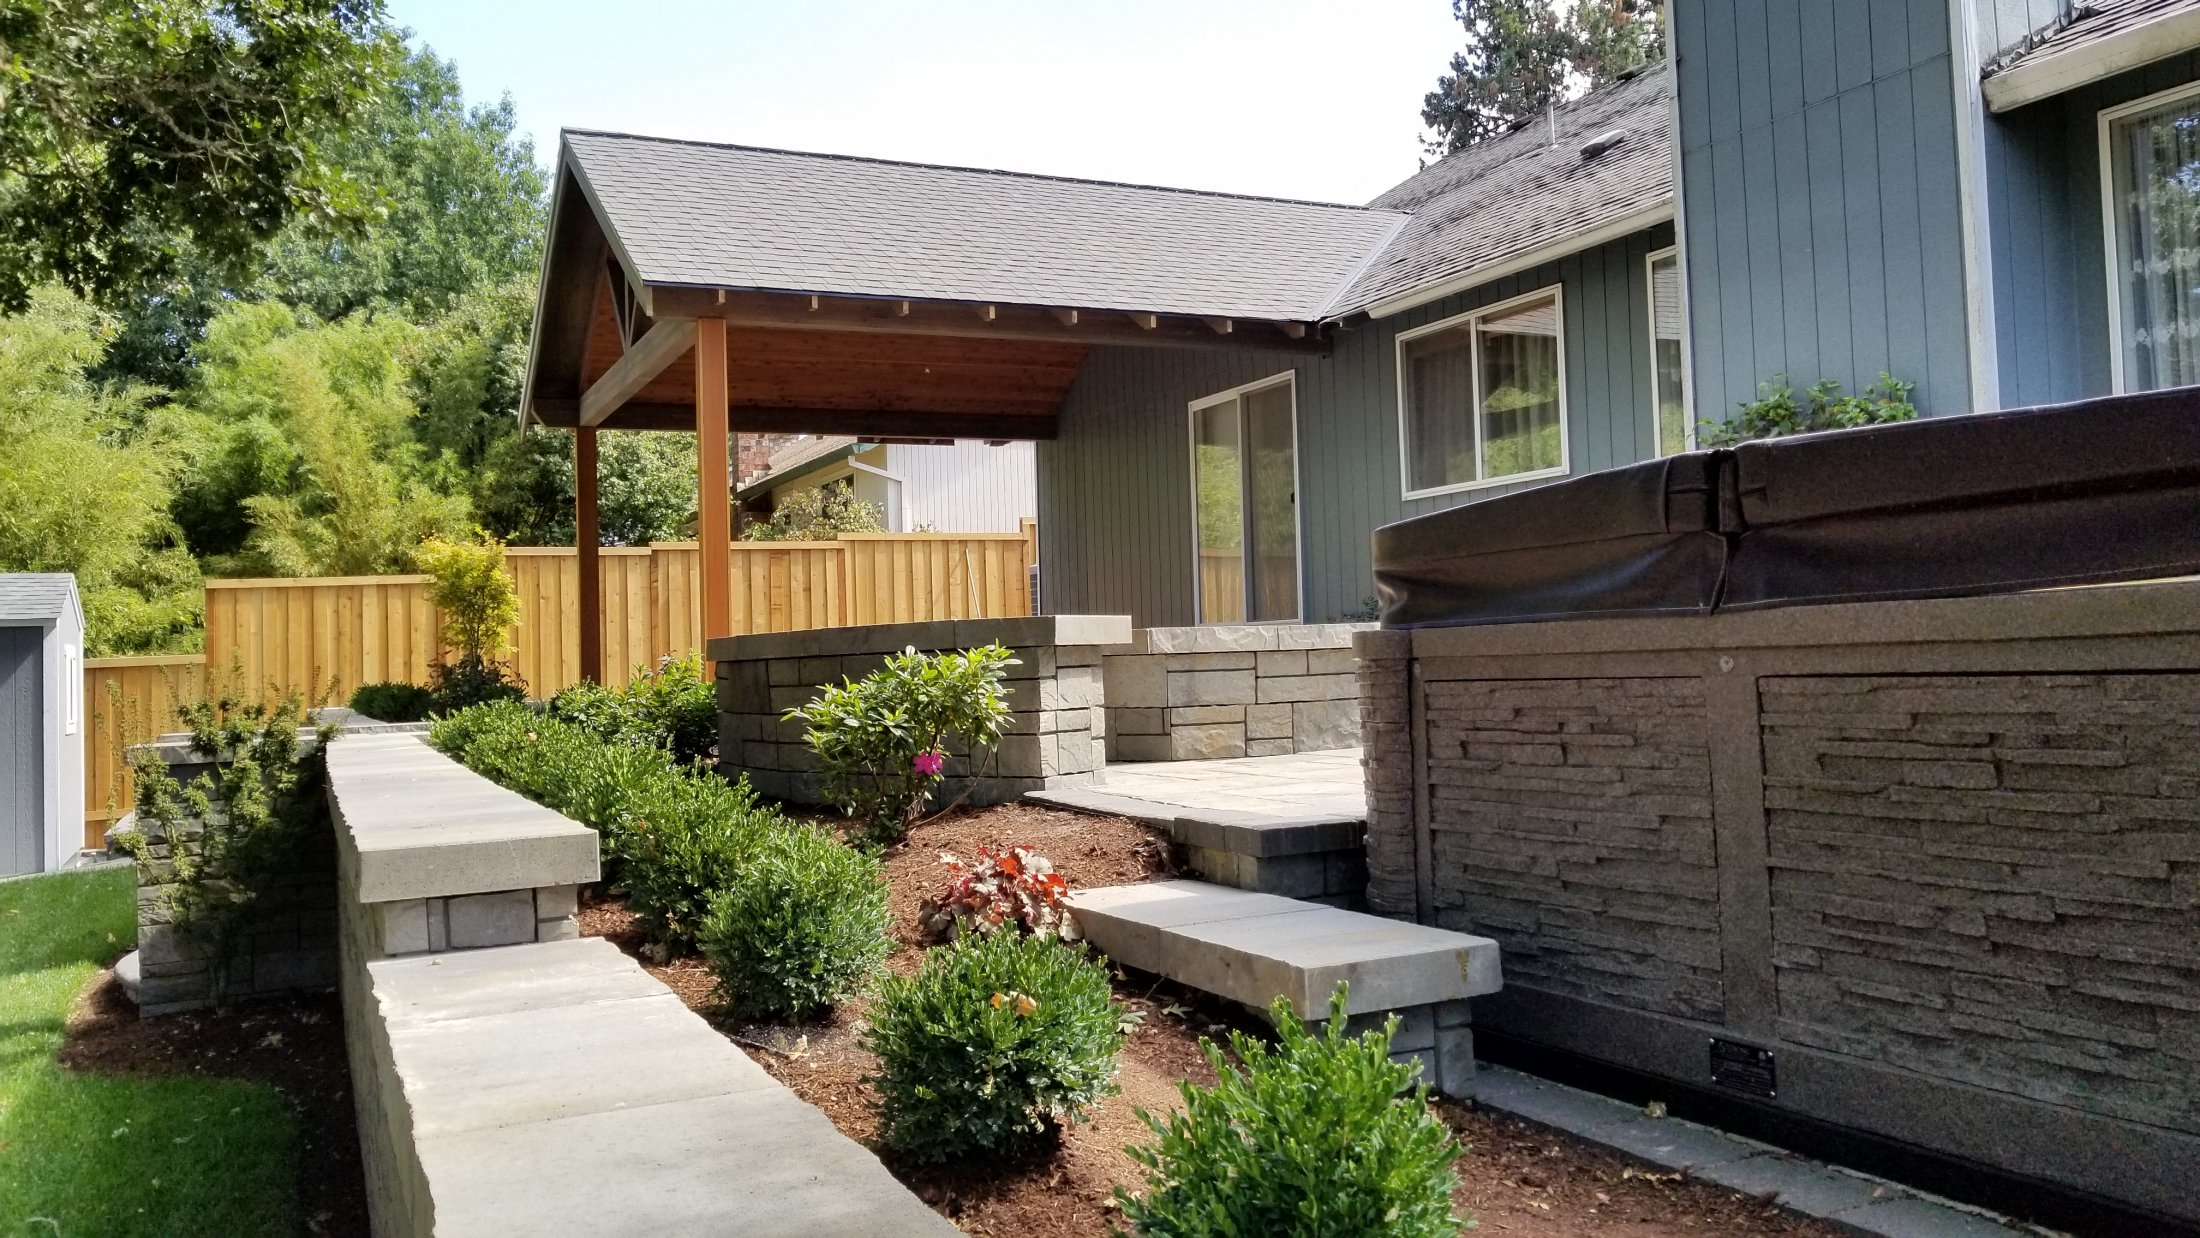 Hot Tub Area, Covered Structure, Landscape